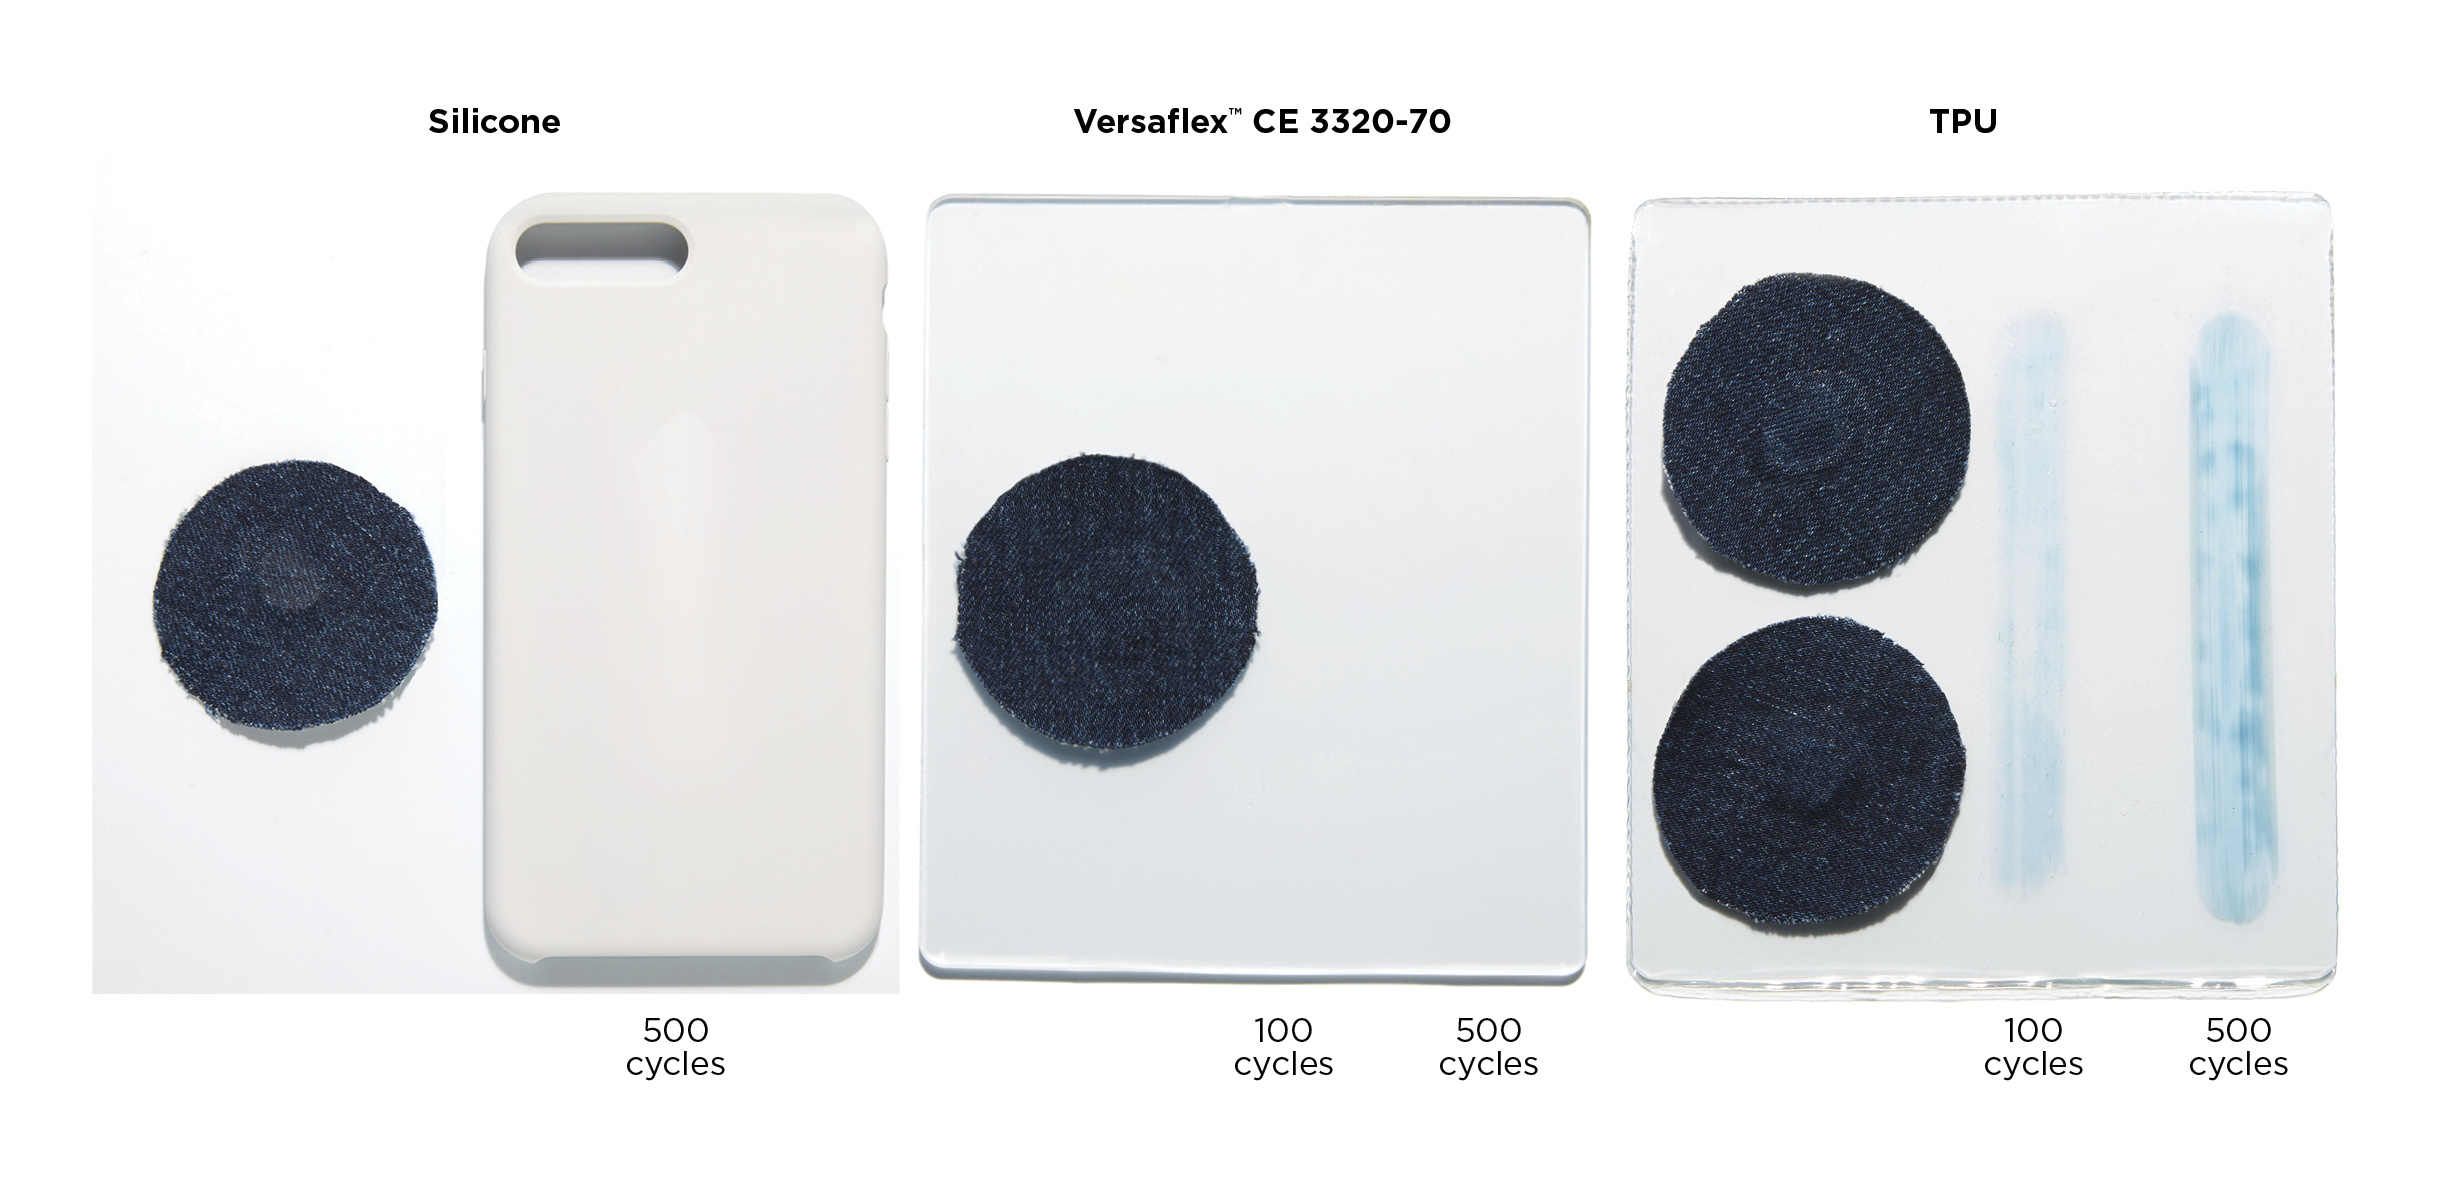 Comparison tests using the same methodology that measures blue jean staining on car seats show how new Versaflex CE 3320-70 performs versus silicone and TPU (Source: PolyOne)